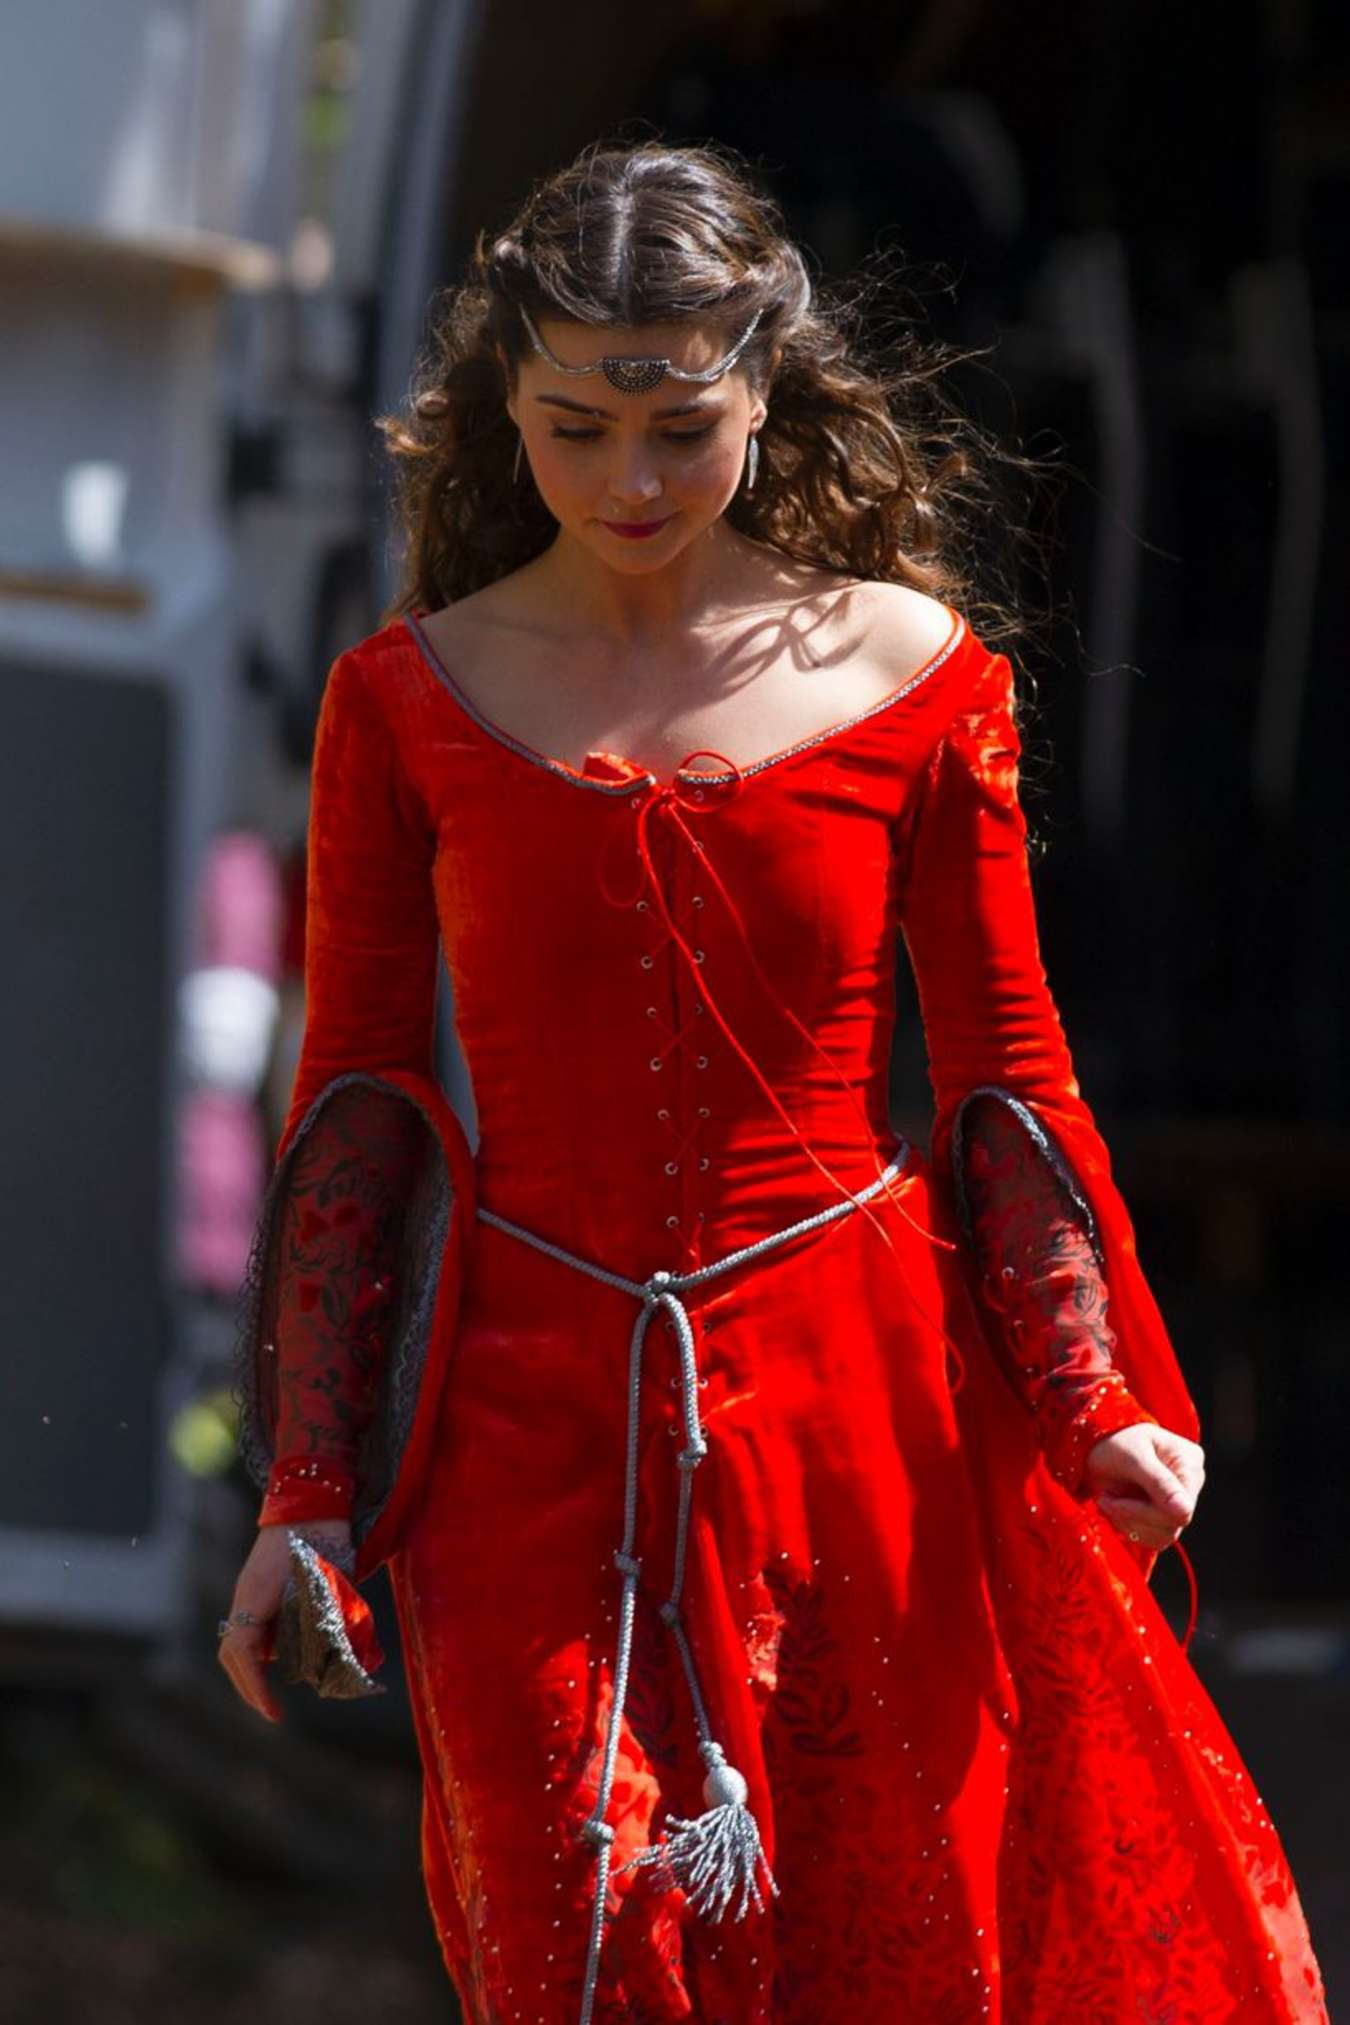 jenna coleman red dress